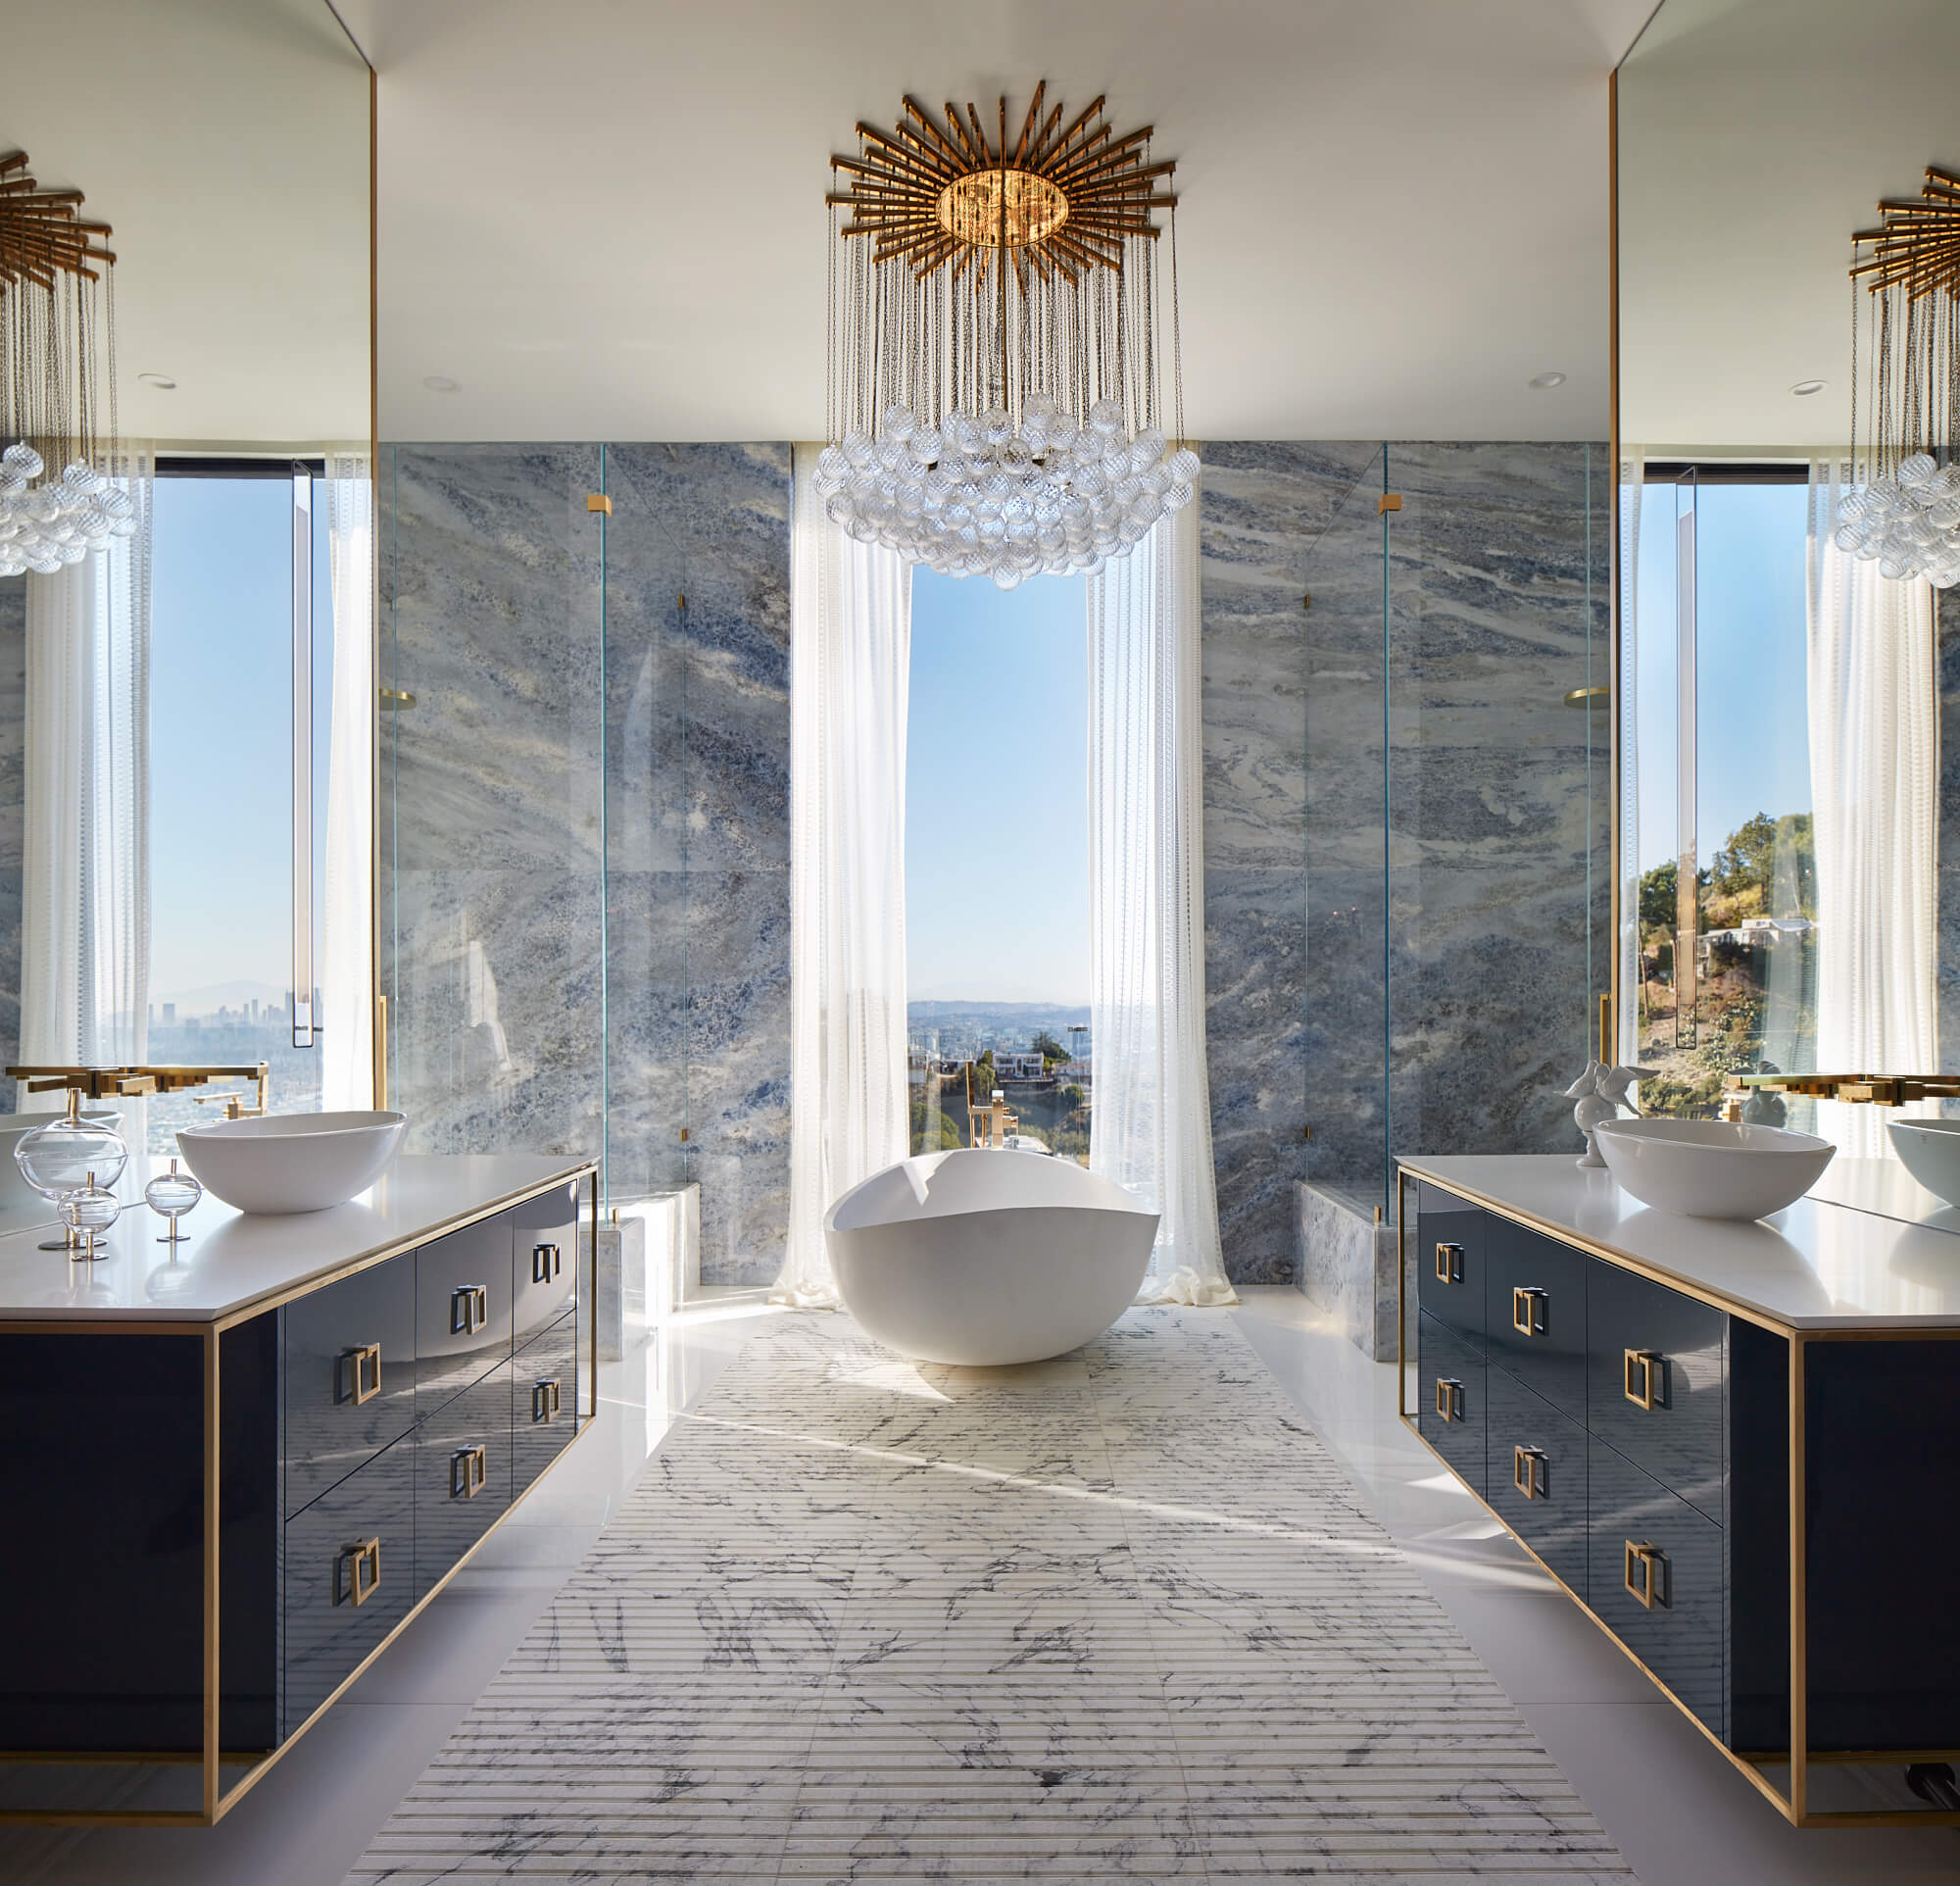 Bathroom+Designs+01a Michael+Mueller+Interior+Design+Los+Angeles